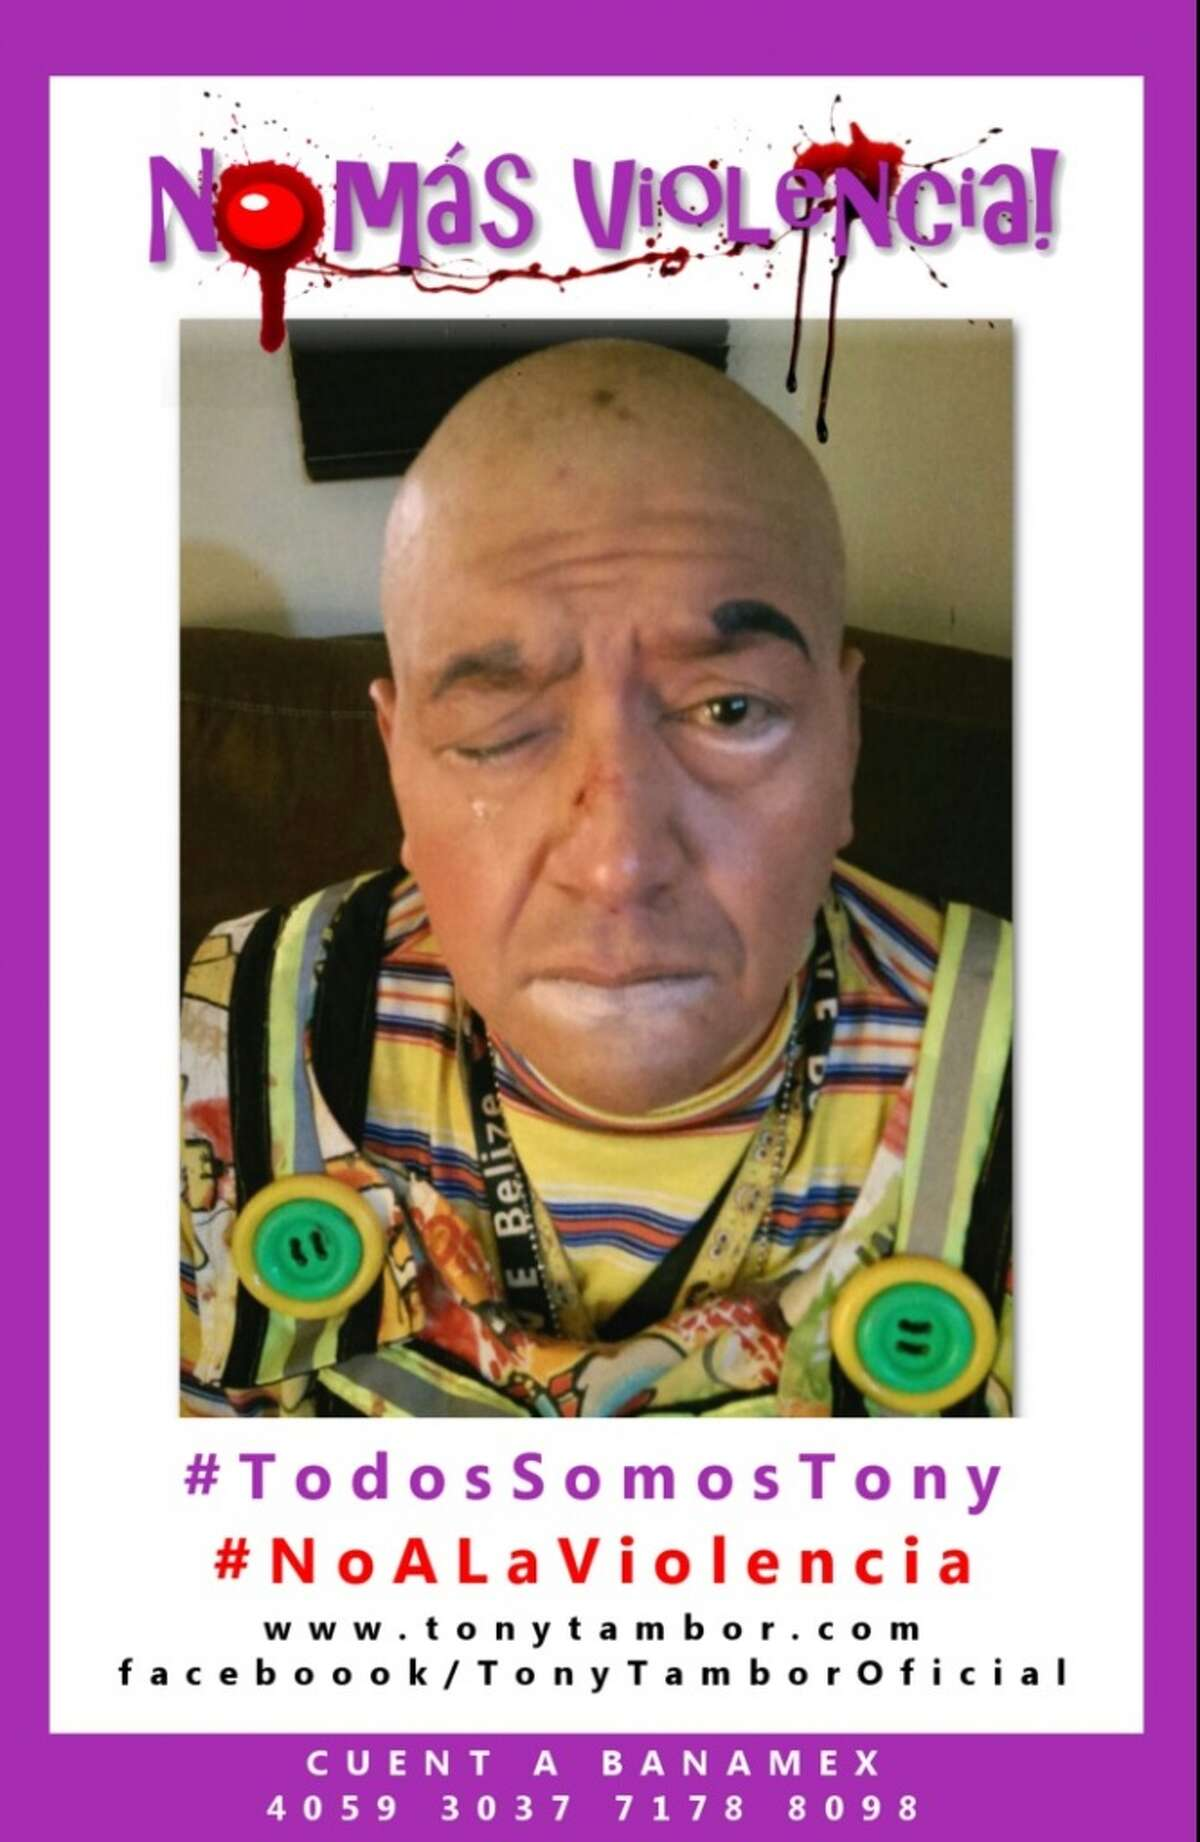 The Mexican clown Tony Tambor took to social media to decry violence against clowns. He was allegedly assaulted during a kids party. Twitter.com/RadioSonora947